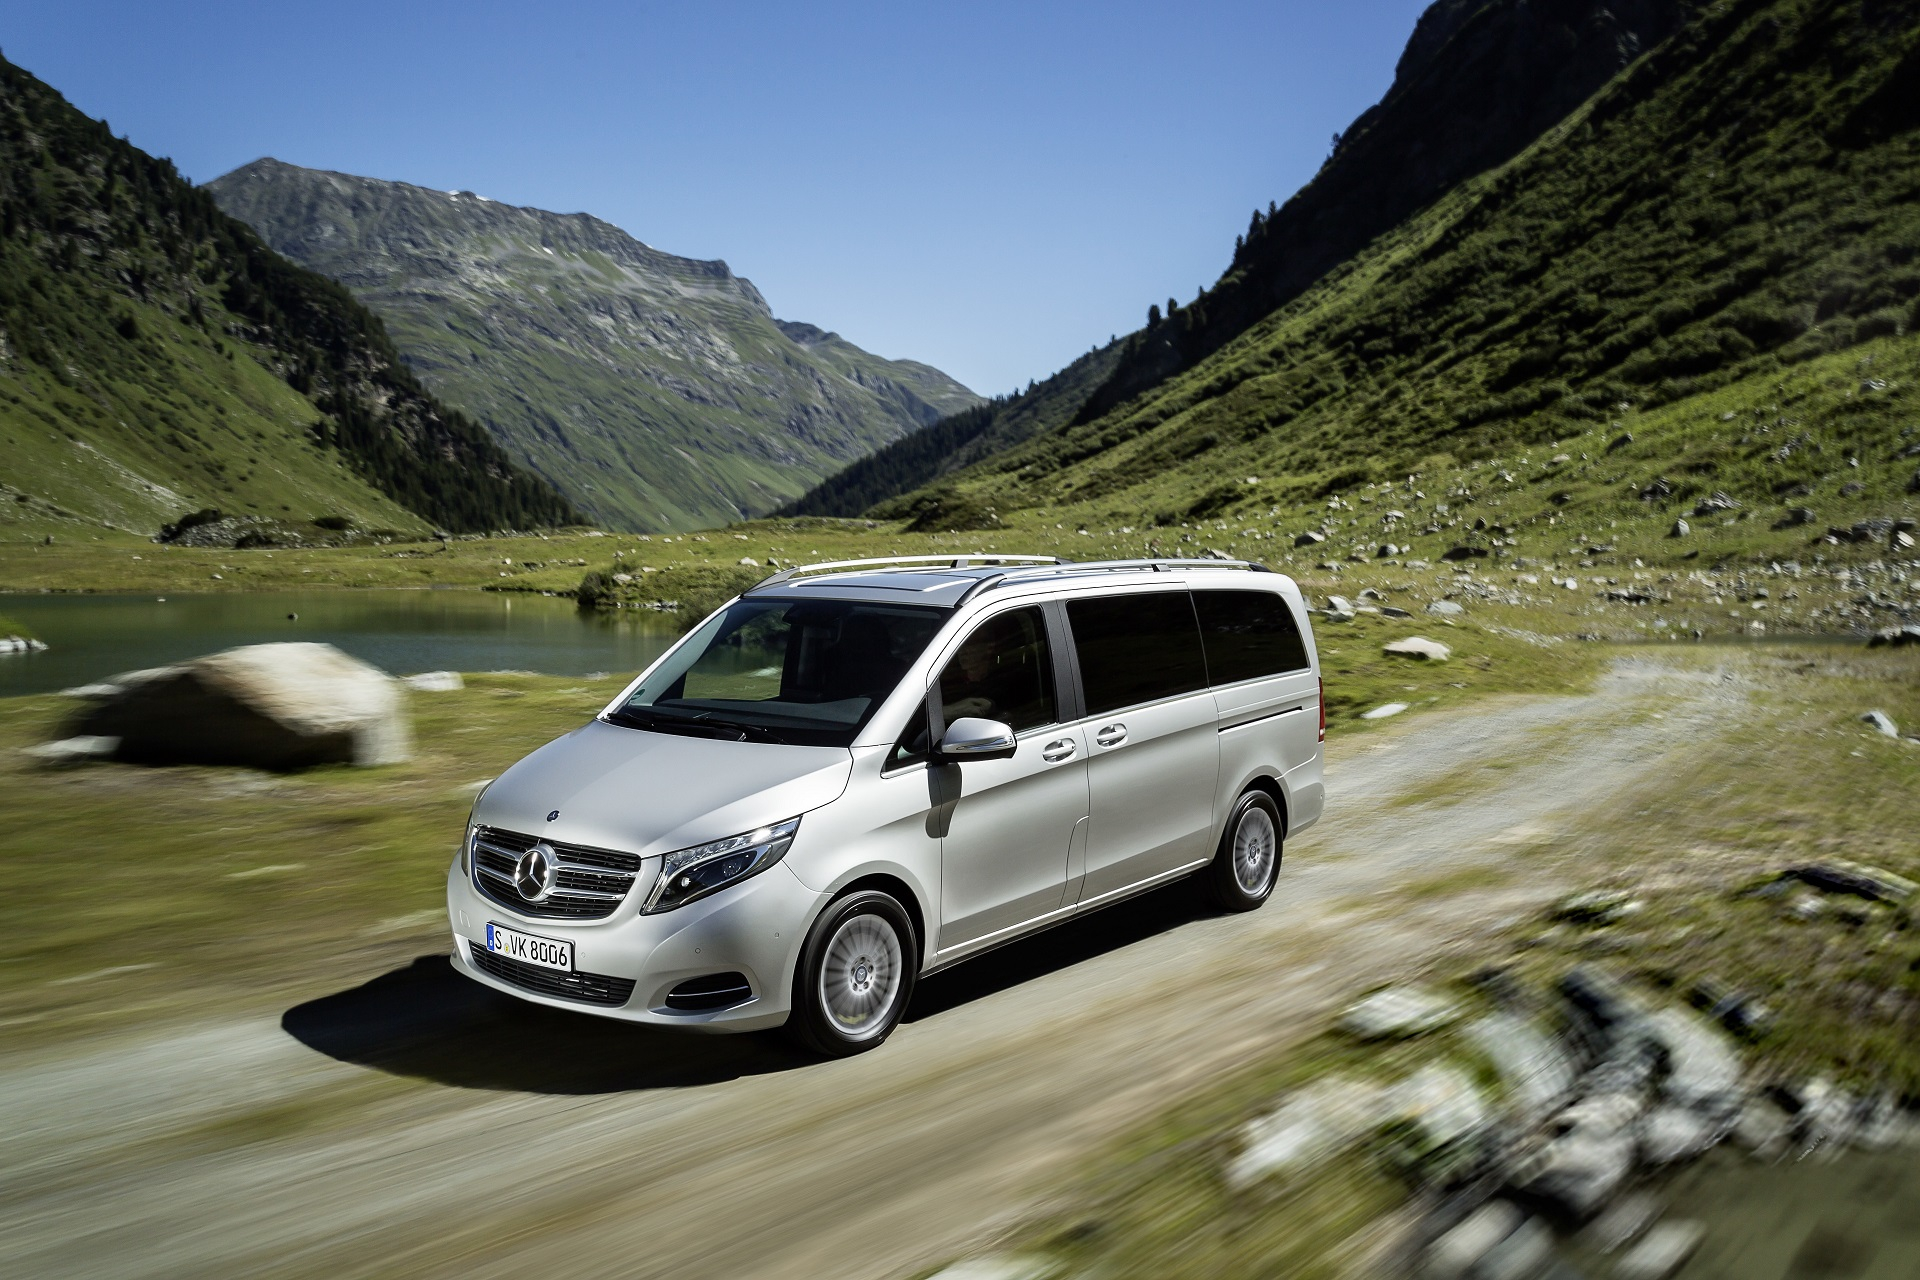 Aconvidat per Mercedes Autolica Industriales i Quadis Rent a Car!